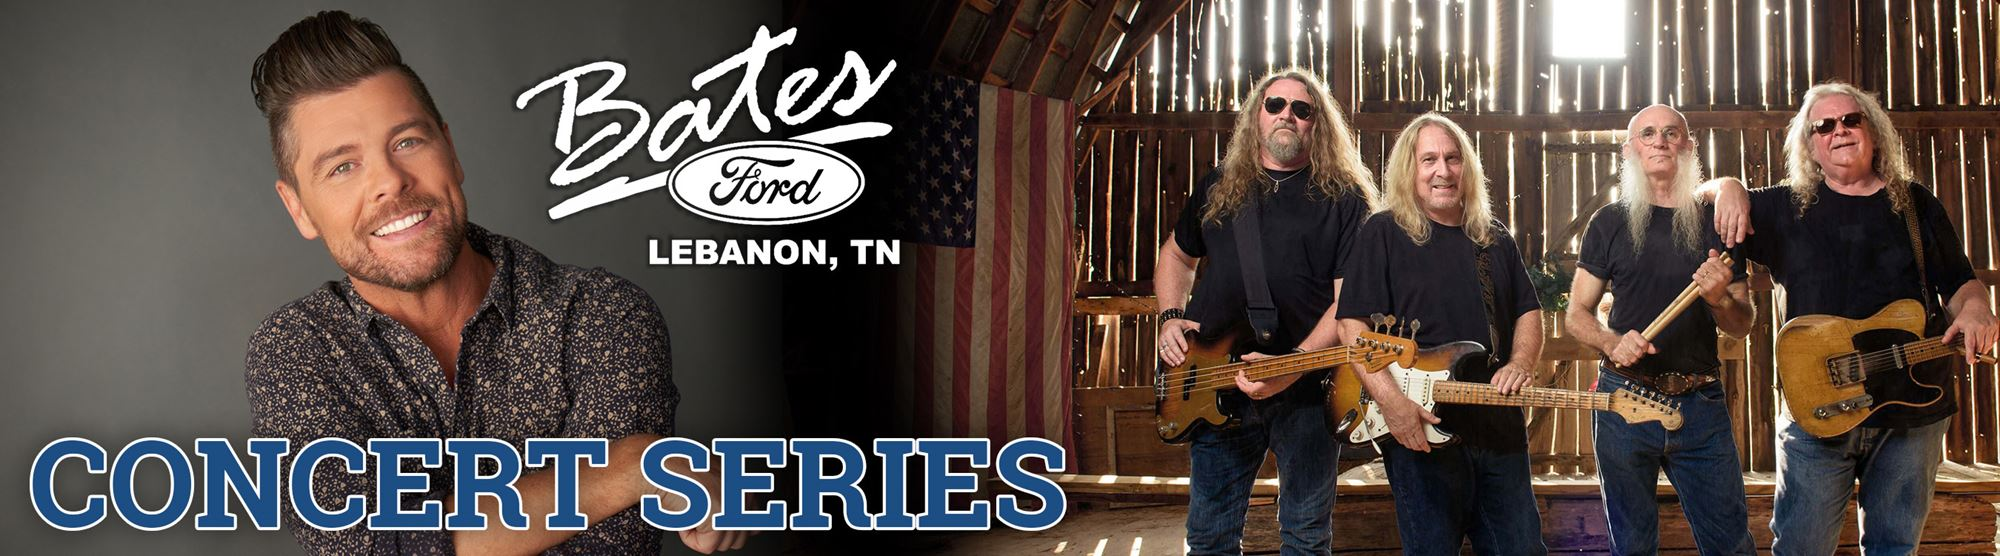 Bates Ford Concert Series